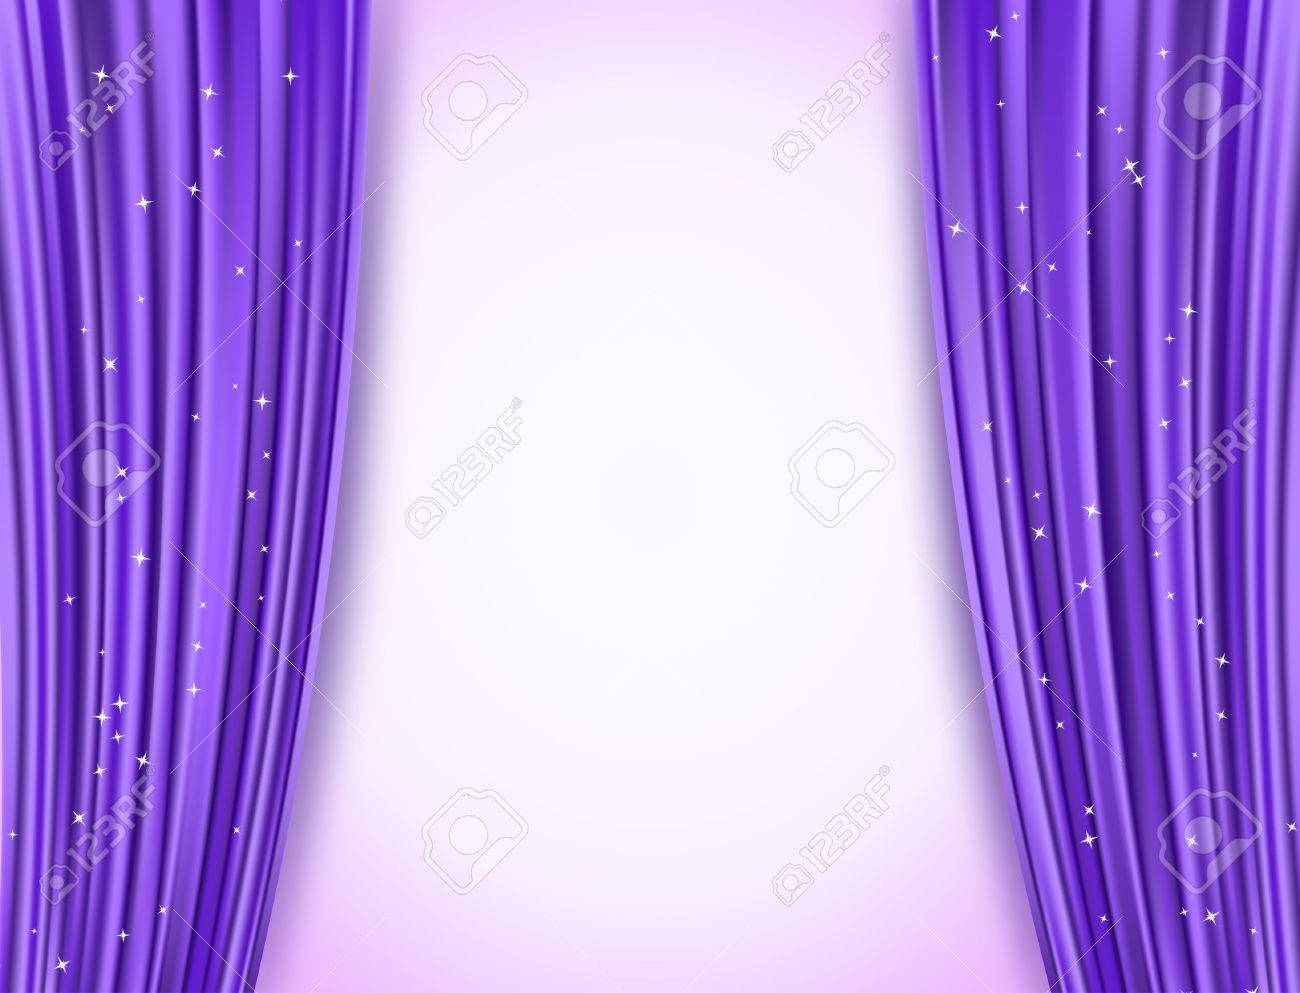 violet theater curtains with glitter - 54325989